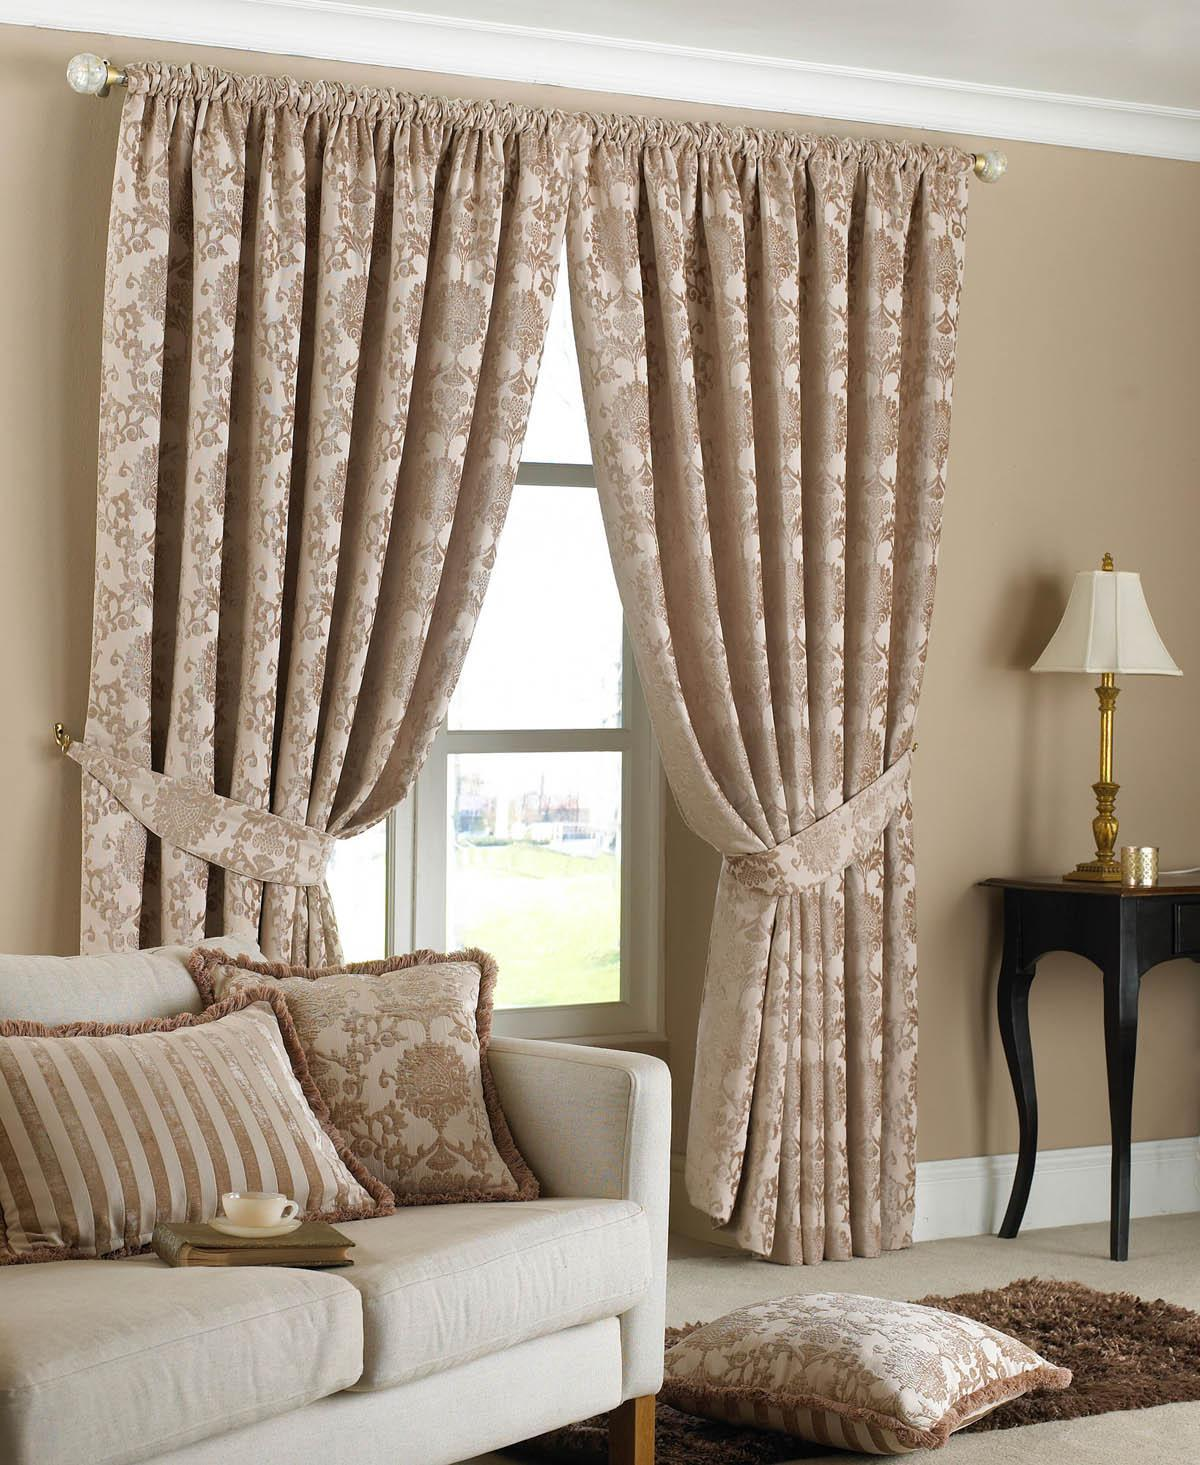 Riva Ready Made Curtains Hanover Ready Made Curtains Beige Picture